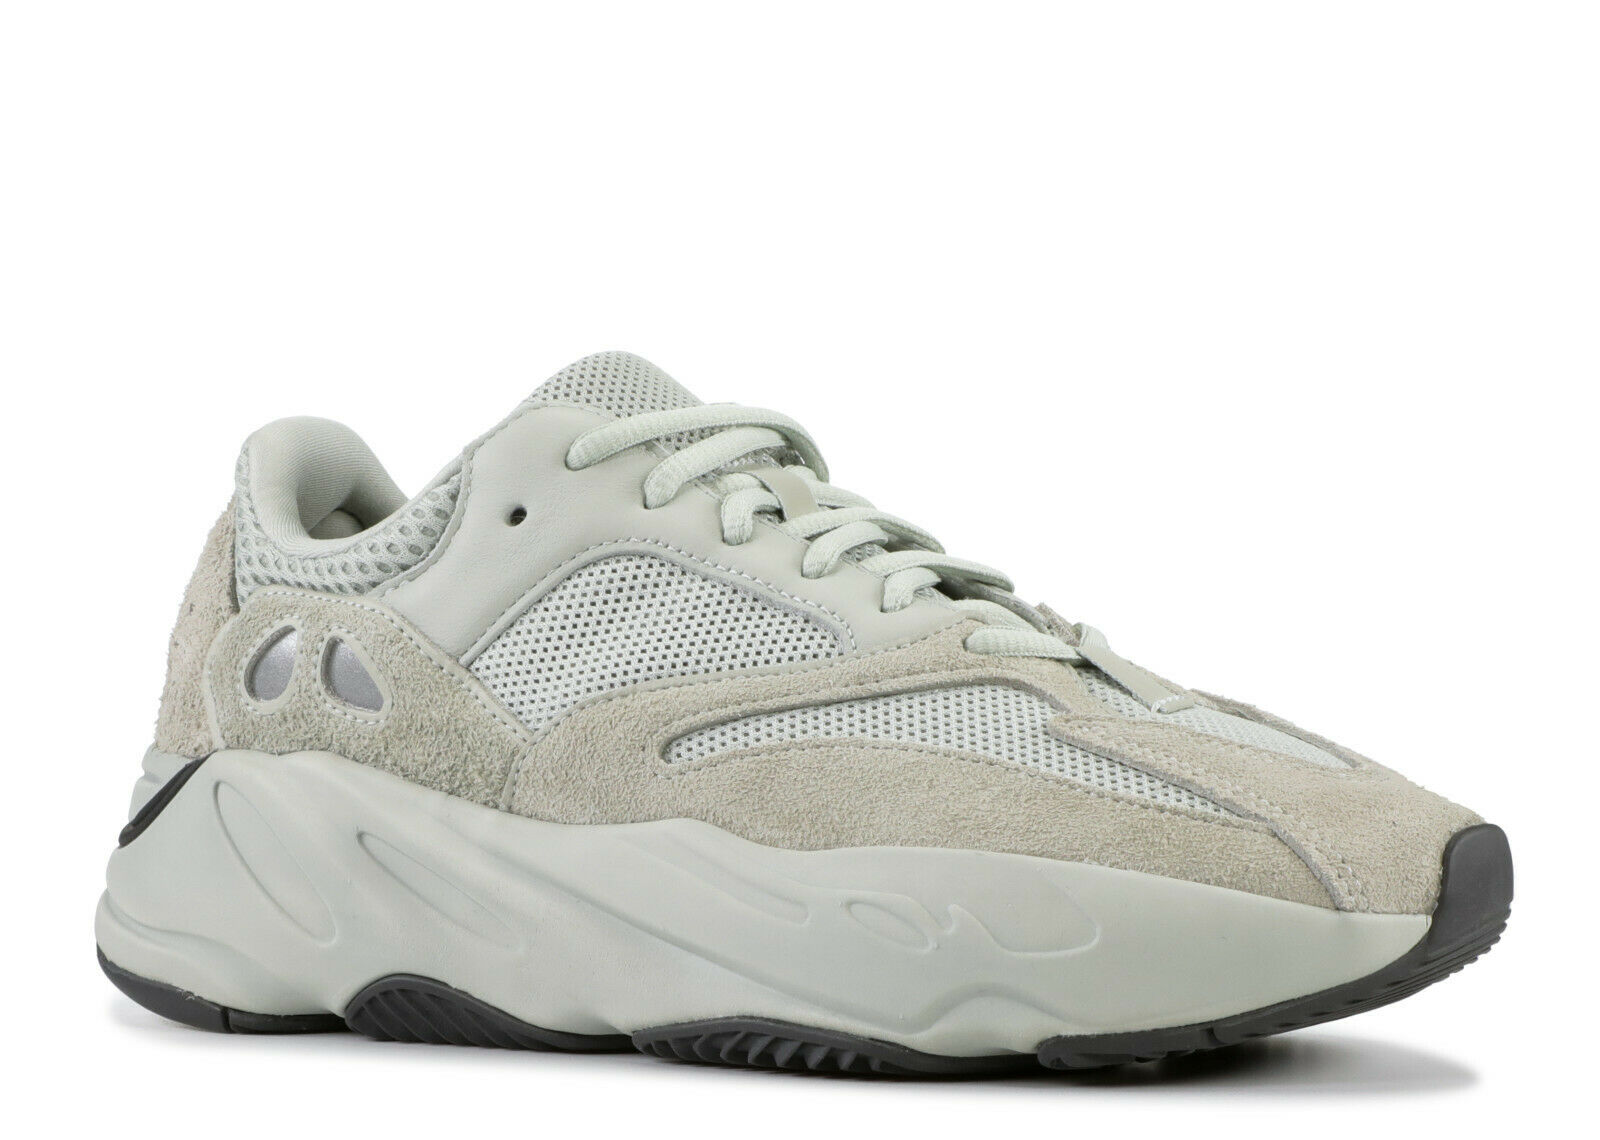 41c9d4c73 YEEZY BOOST 700  SALT WAVE RUNNER  EG7487 - npbkcw7203-Athletic ...